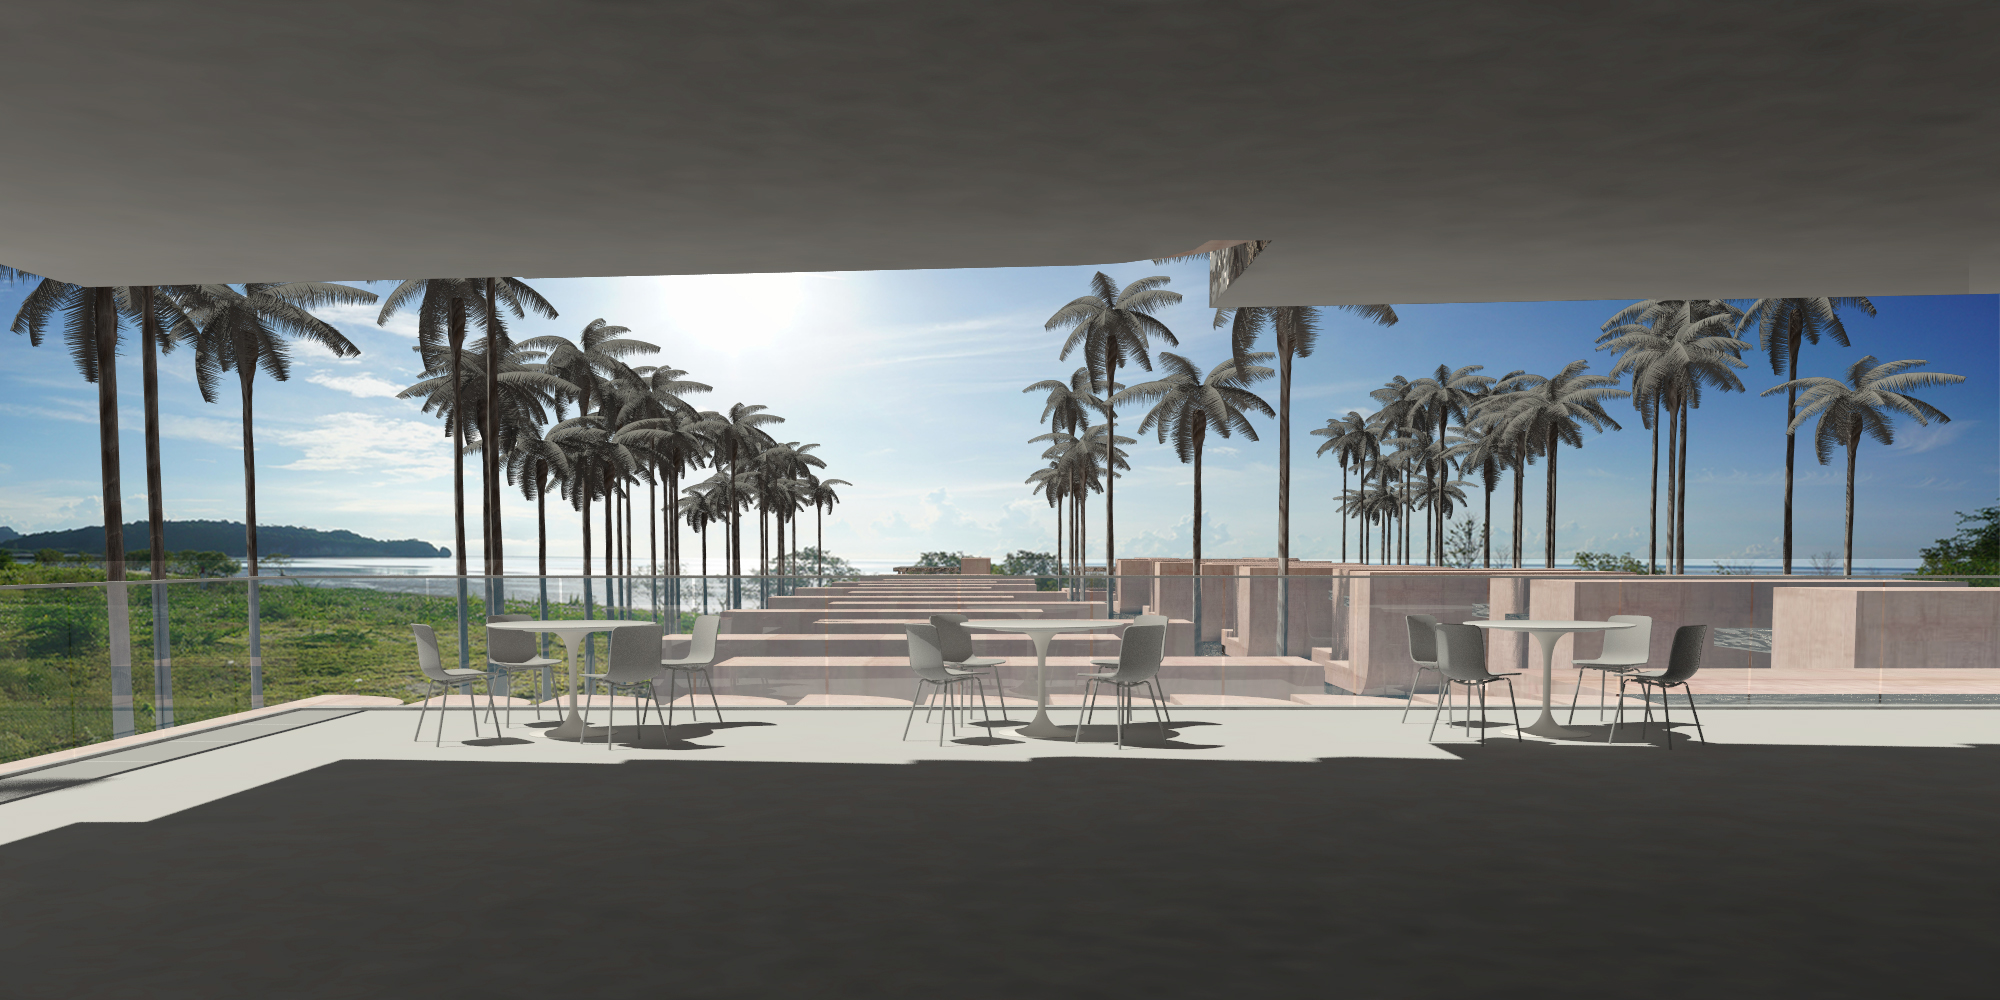 spatial practice architecture office Los Angeles Hong Kong Acts Hotel Hua Hin Thailand restaurant view sea